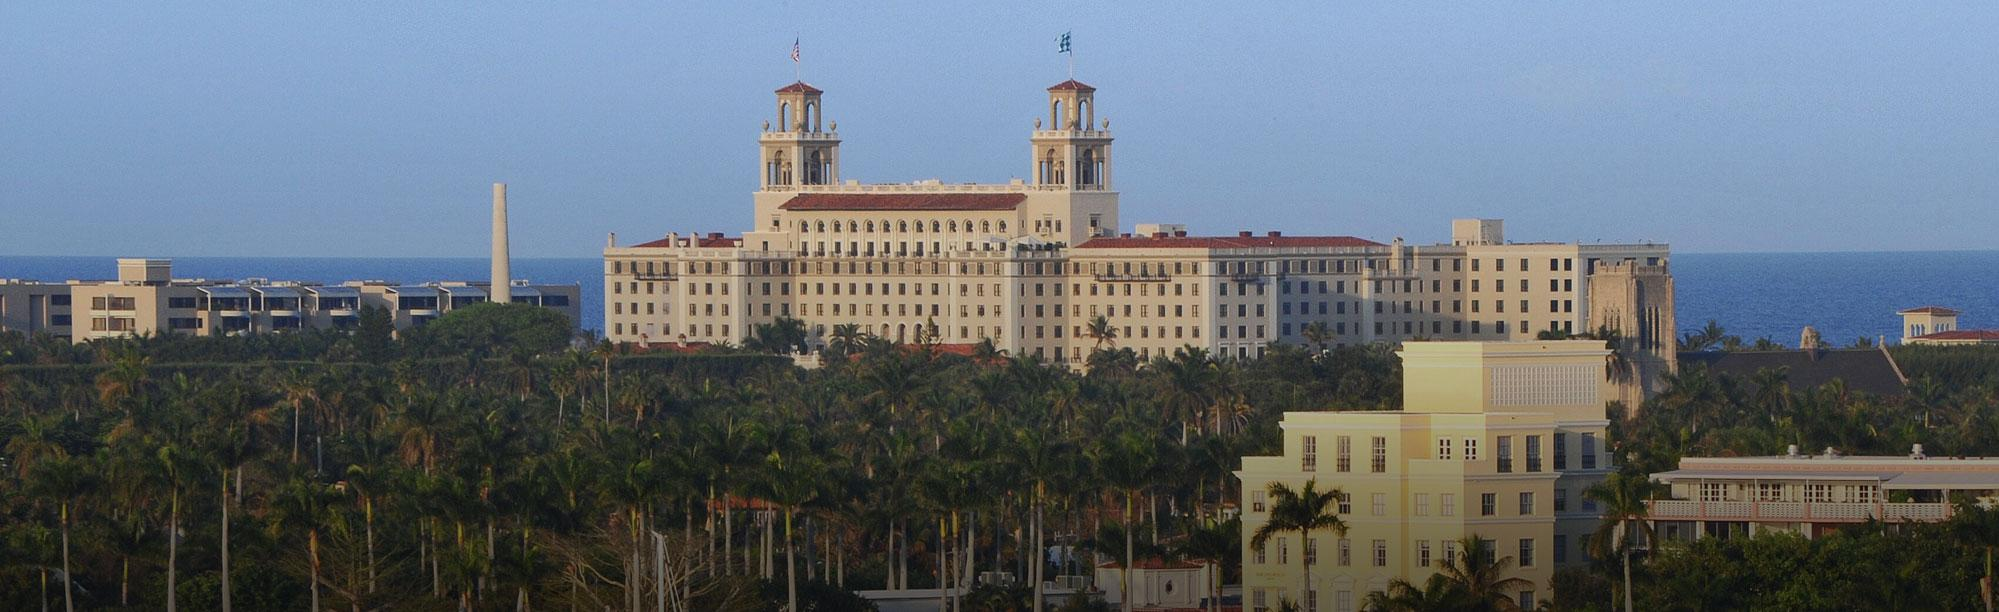 Breakers hotel stands tall in the background of a field of palm trees. The Ocean stretches in back.